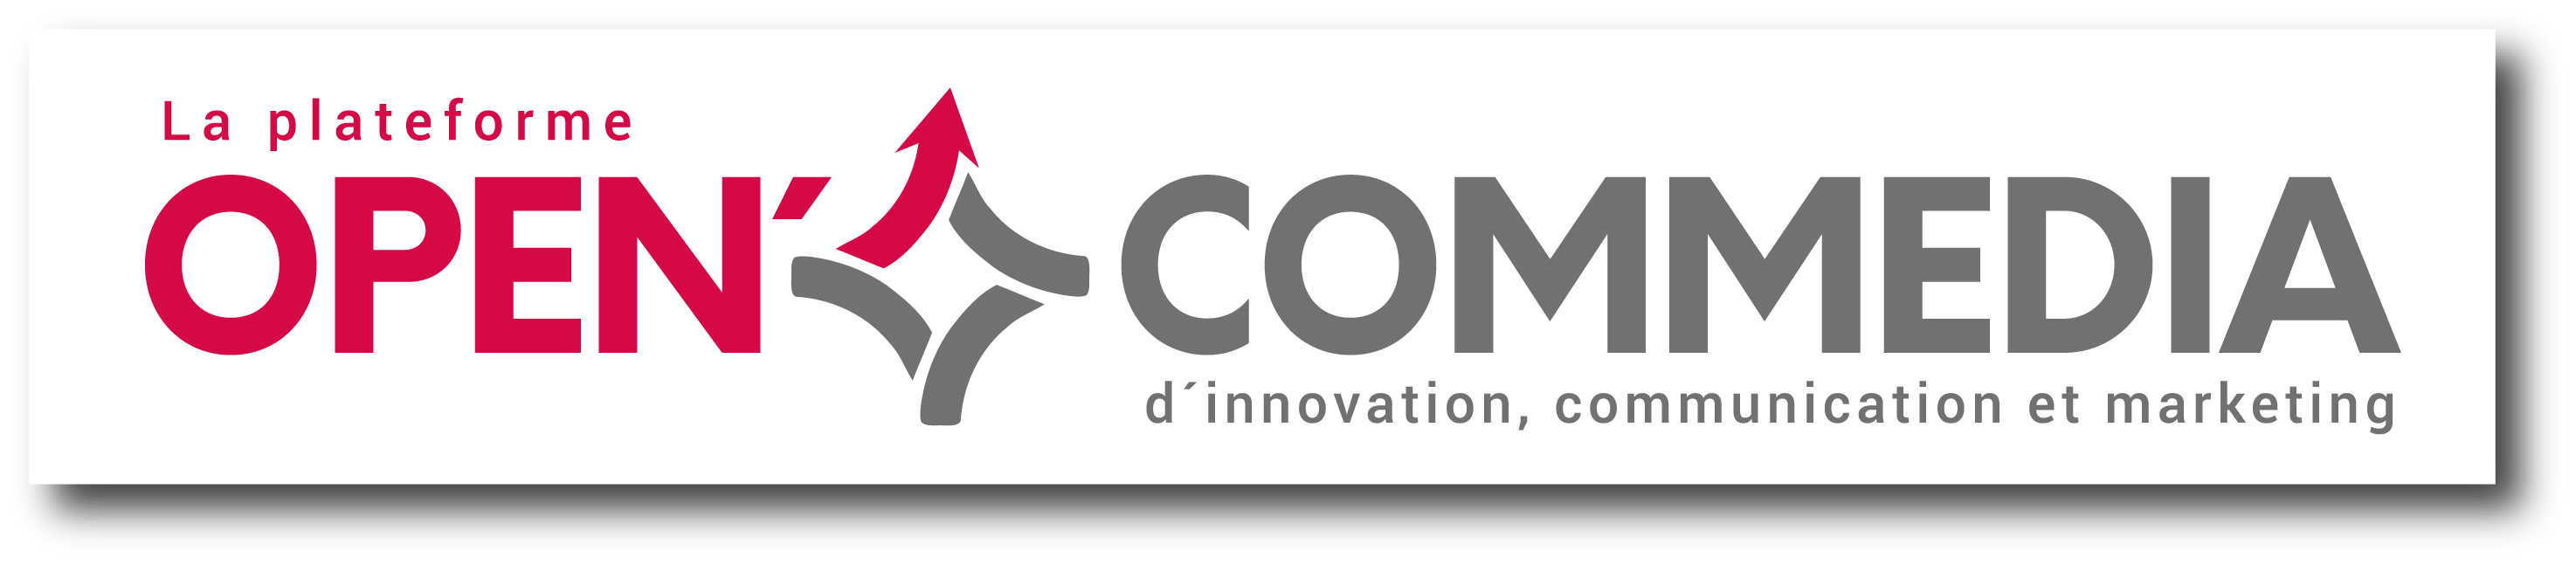 Babbler, sur la plateforme innovation communication & marketing OPEN COM'MEDIA